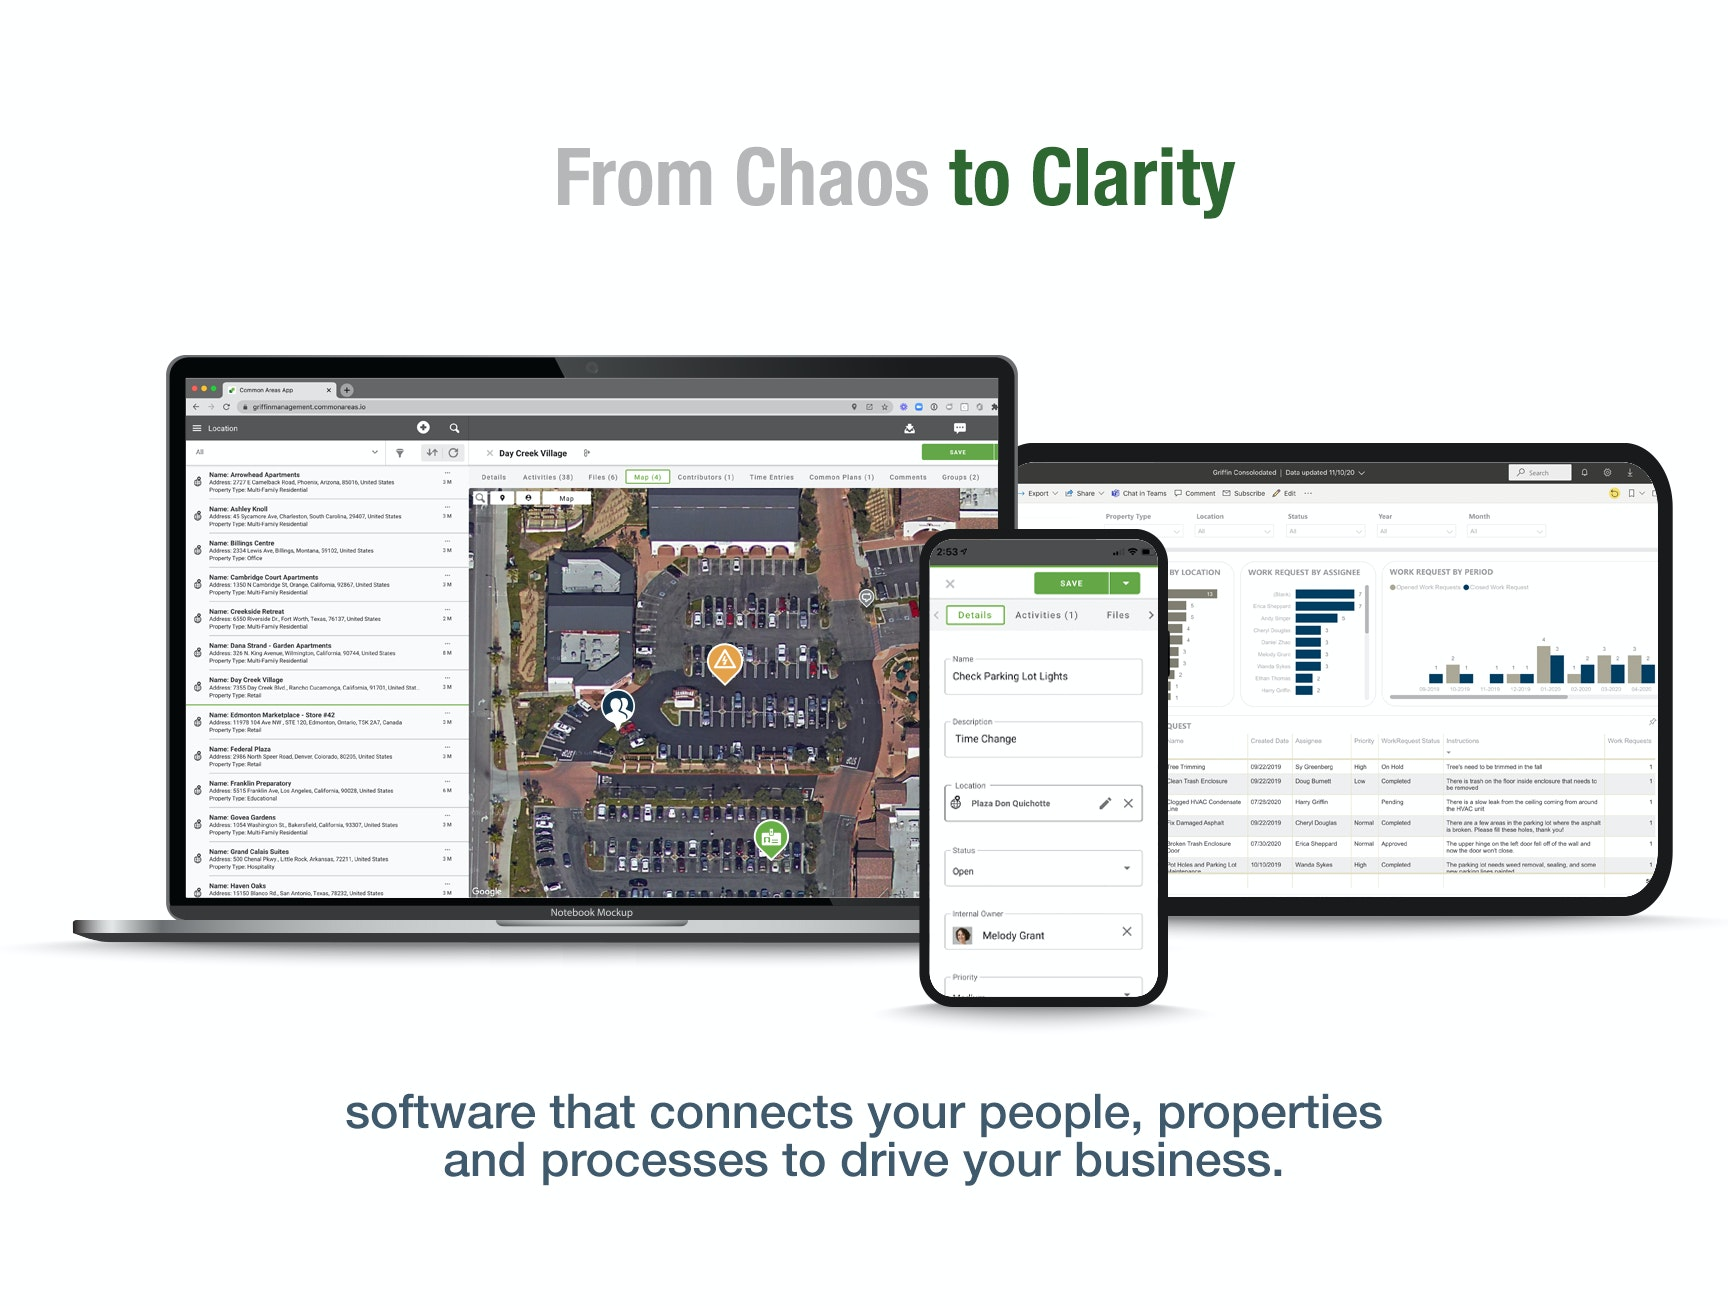 Common Areas screenshot: Common Areas helps you achieve visibility into your information, documentation and processes to drive your real estate business.